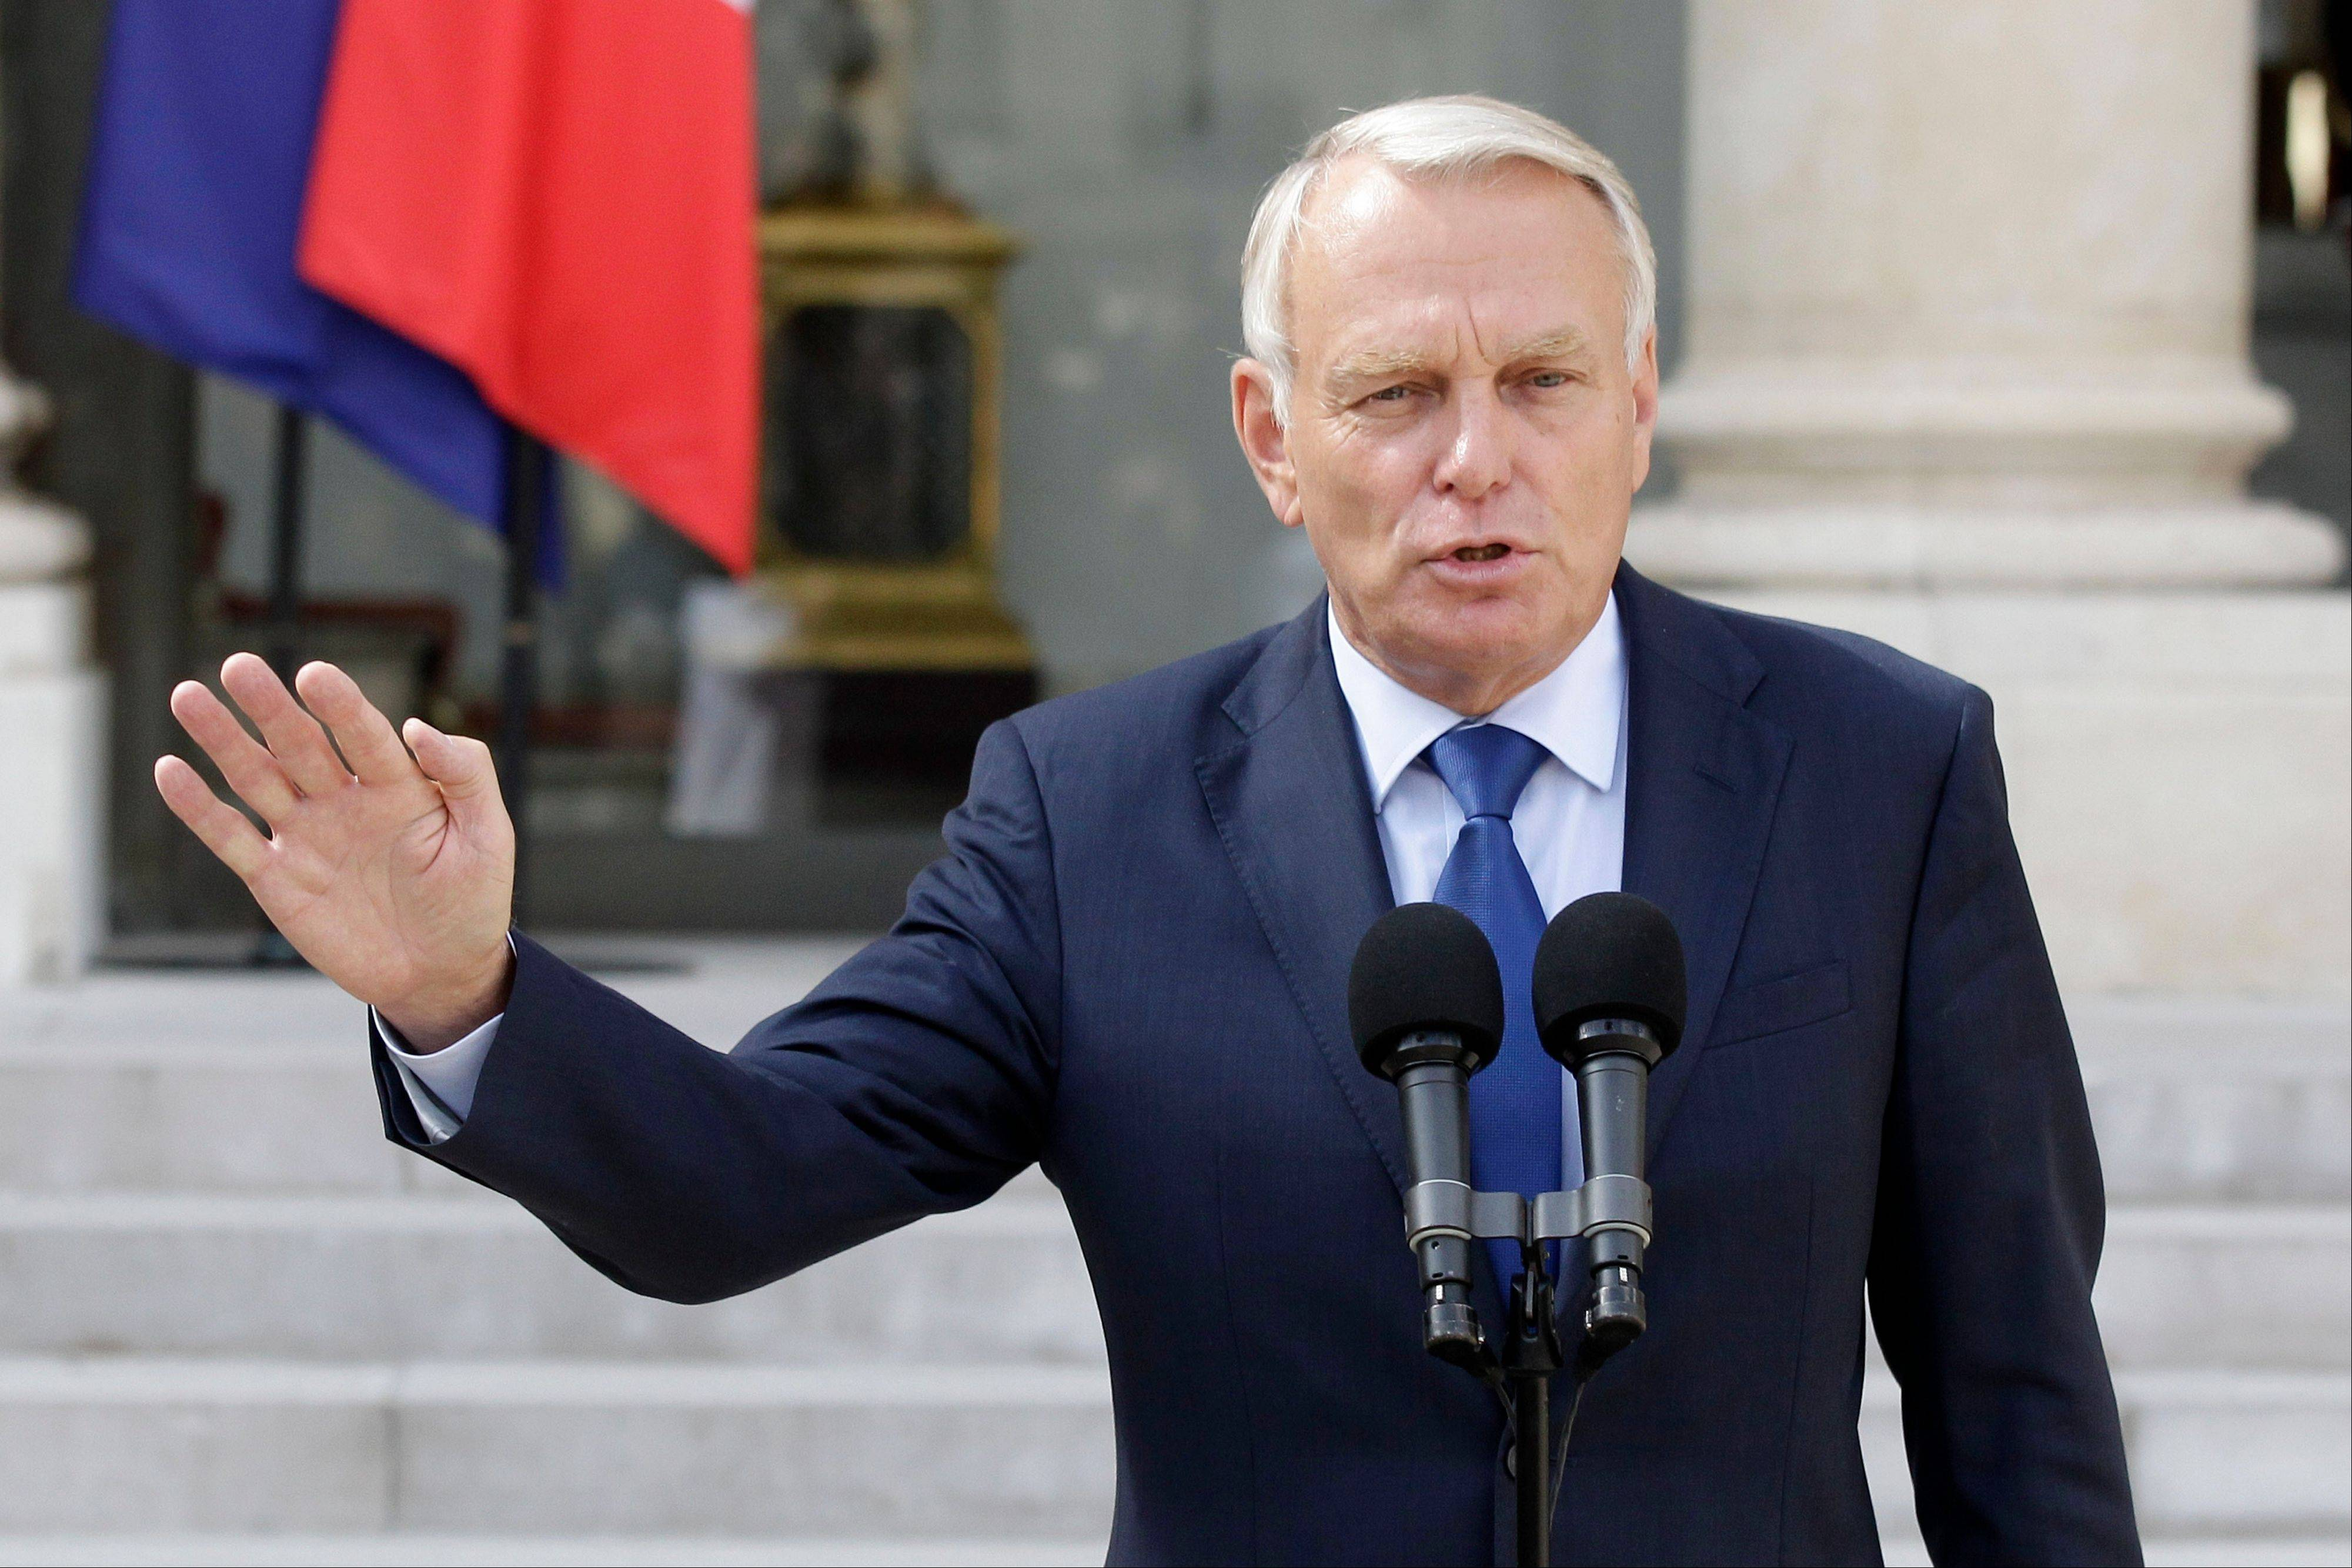 France's Prime Minister Jean-Marc Ayrault says his government will lower taxes on gasoline to ease the pinch of rising prices on French pocketbooks.